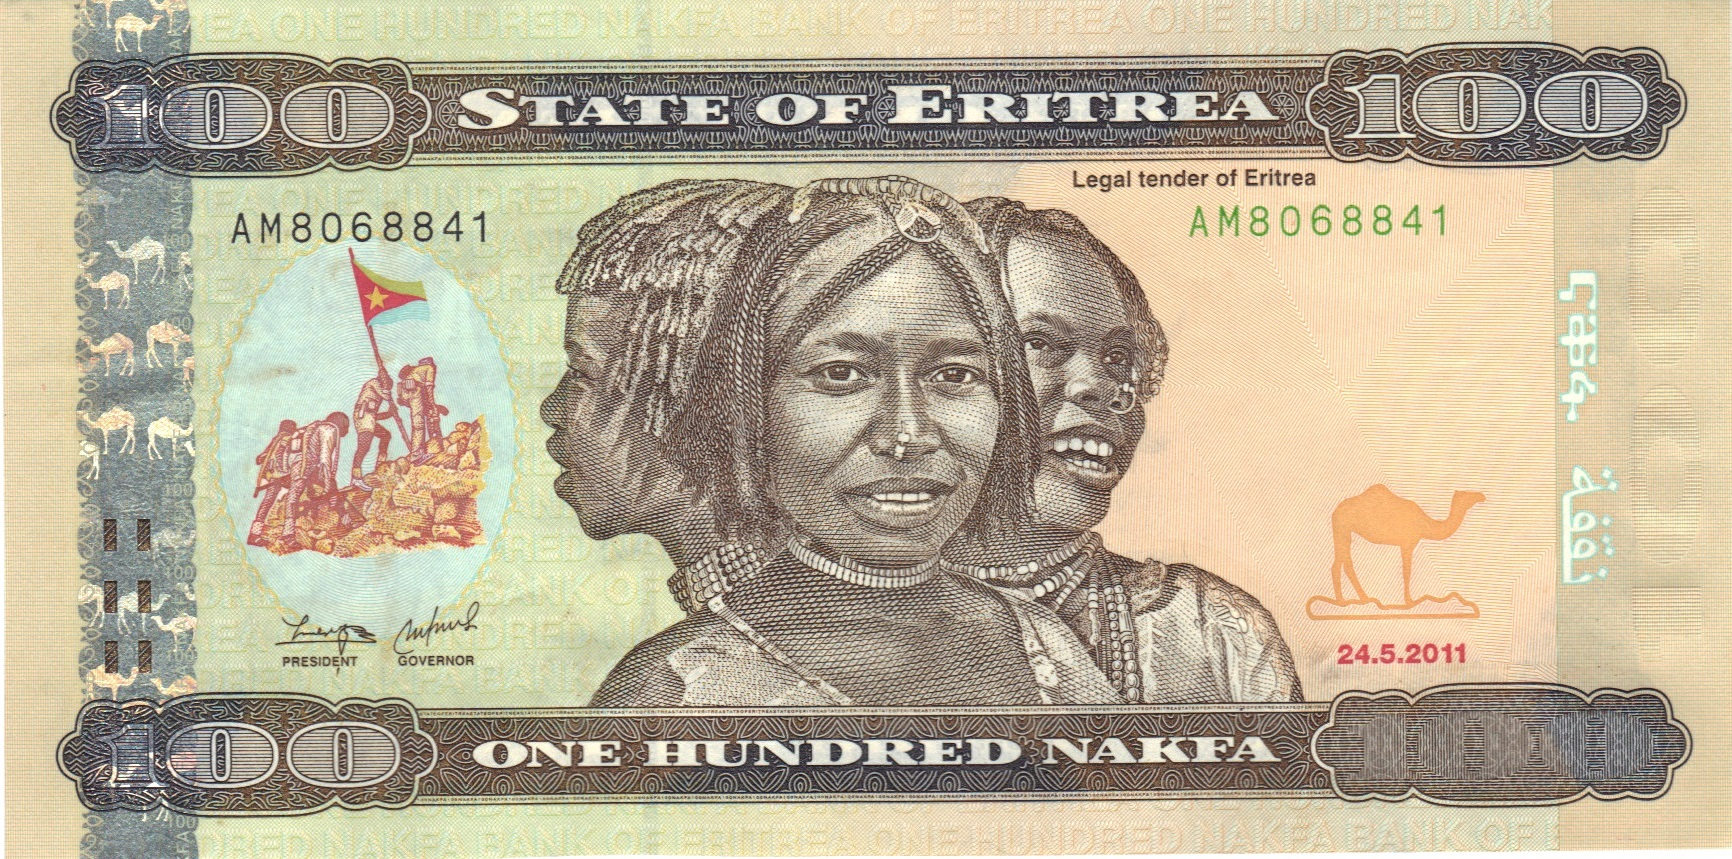 Eritrean Banknote Of One Hundred Nakfa